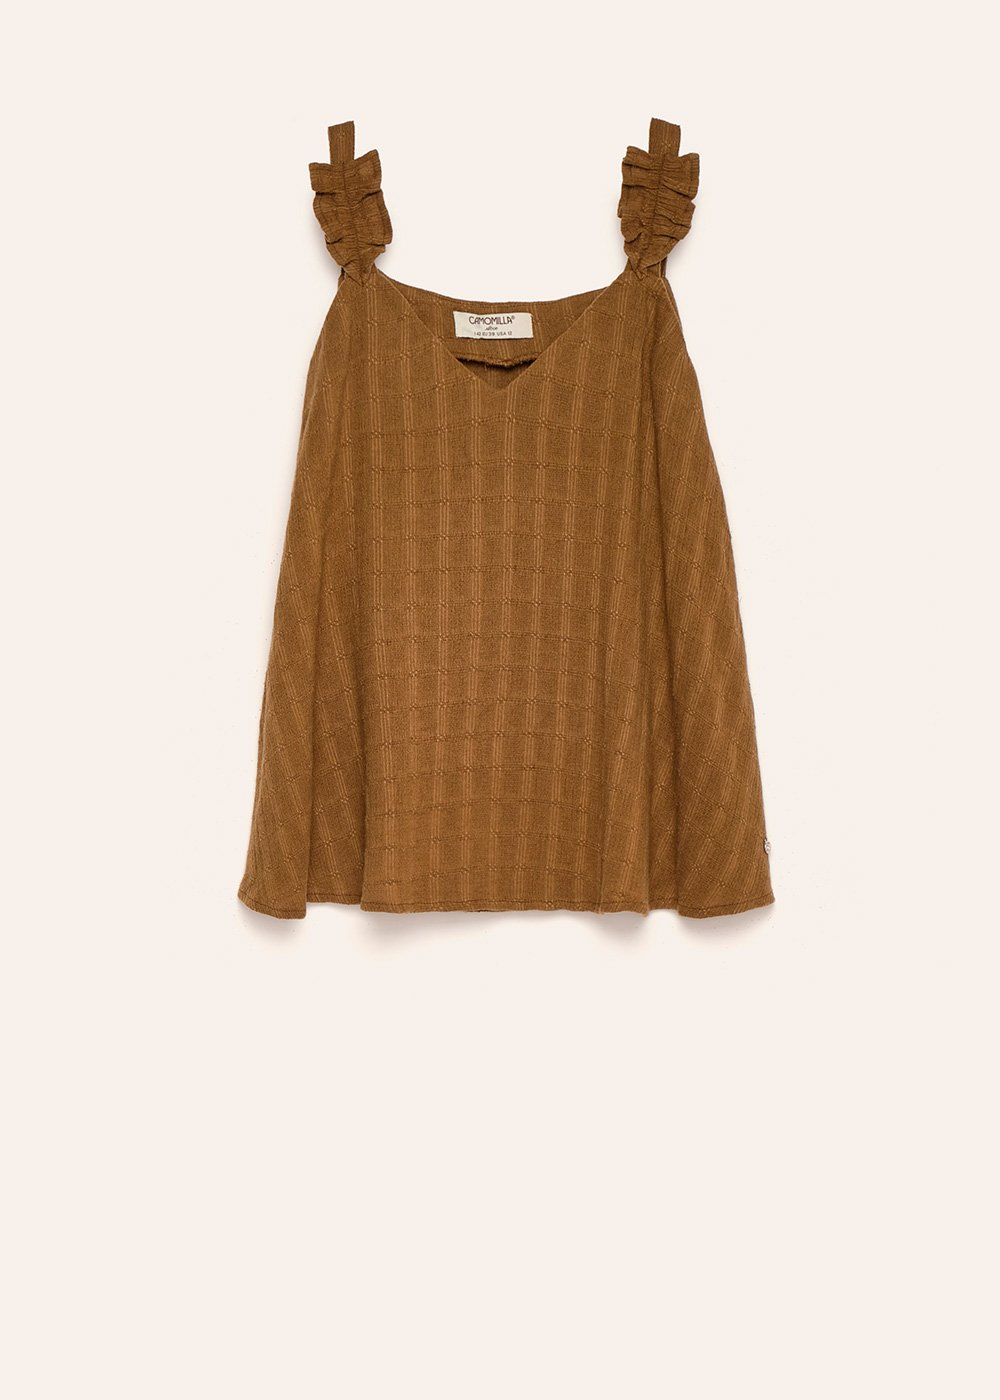 Tild top with ruffled shoulder straps - Green - Woman